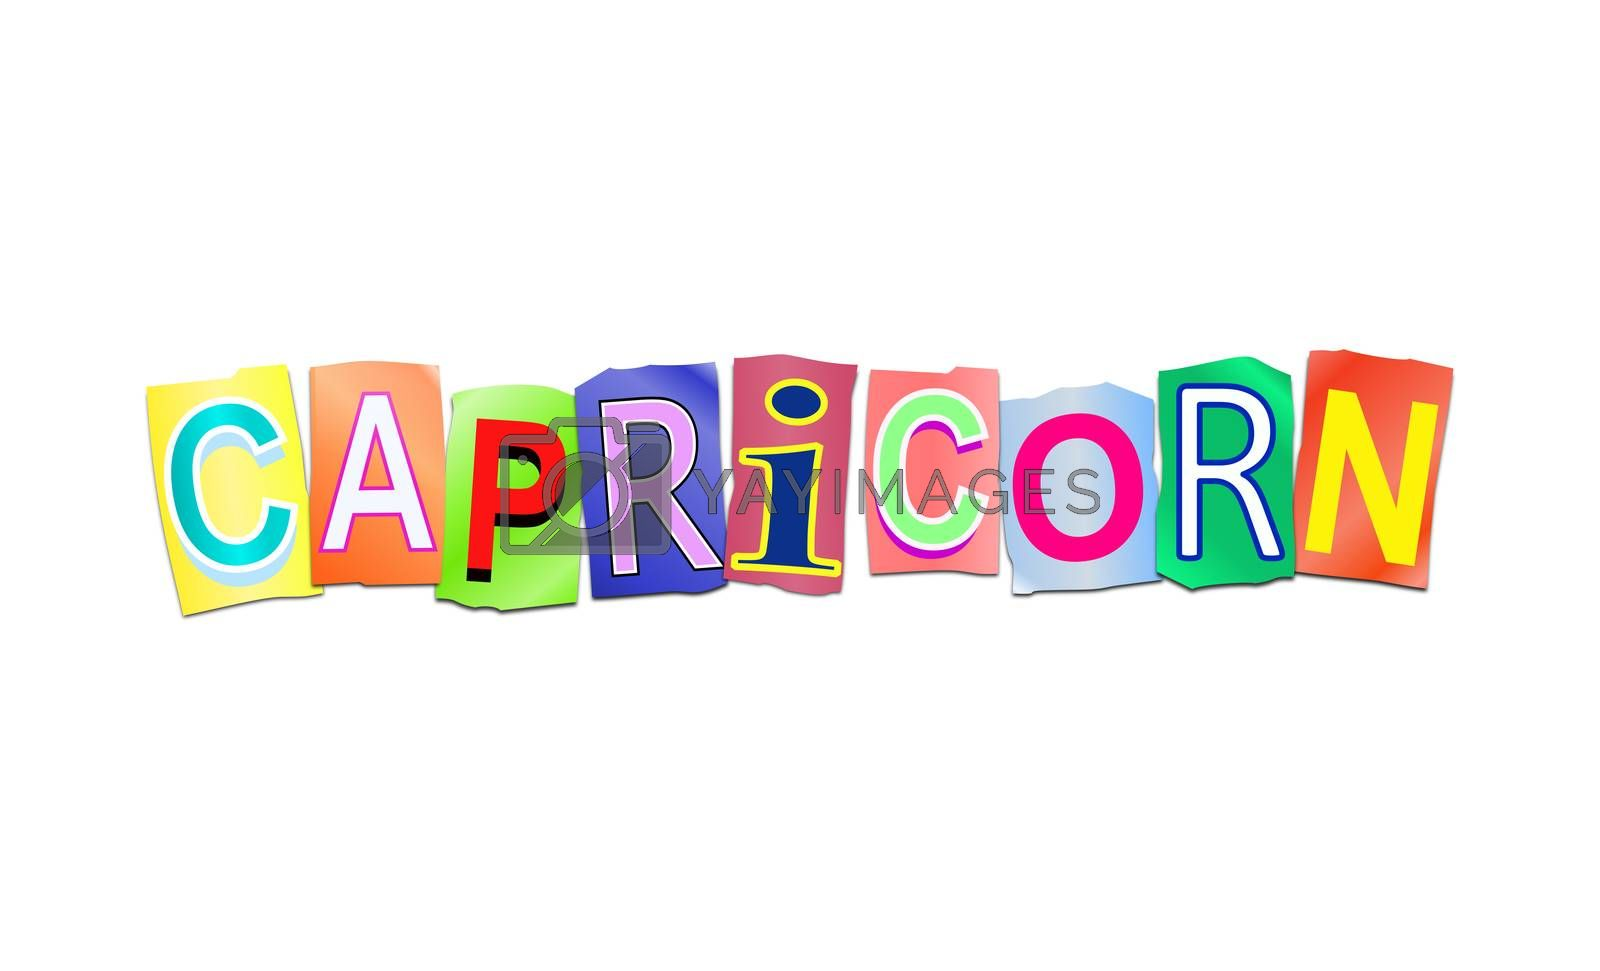 Illustration depicting a set of cut out printed letters arranged to form the word capricorn.